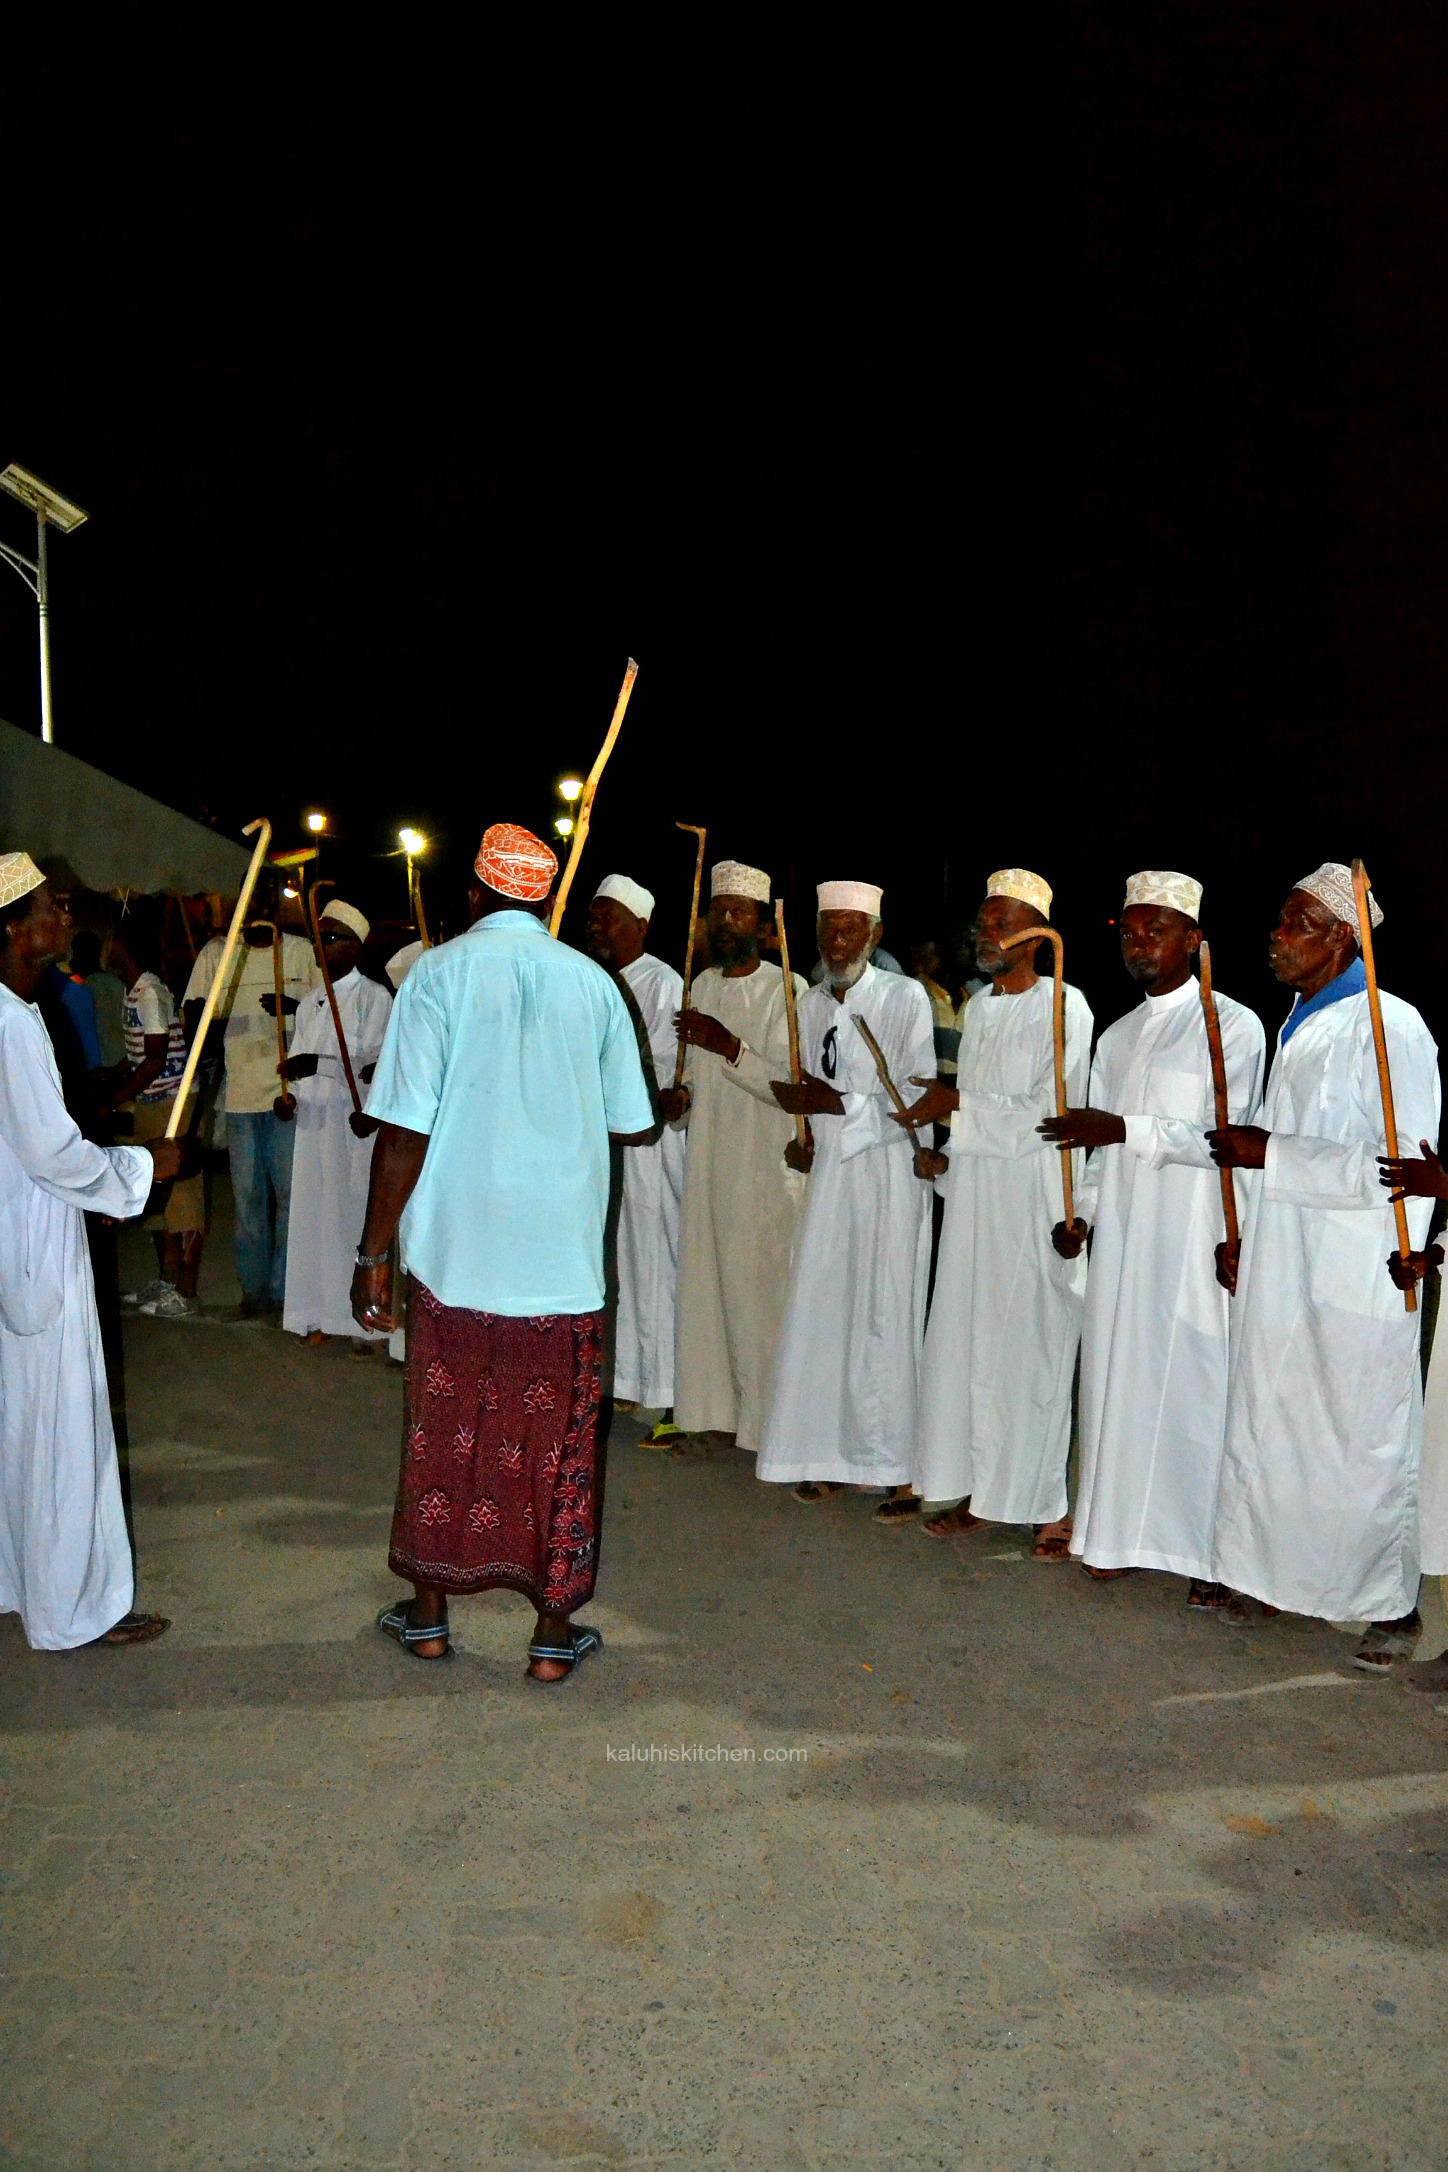 LOCAL RESIDENTS, MOSTLY MEN, LINE UP THE LAMU SEA FRONT AND SING SONGS THAT speak of teh heritage of lamu county_kaluhiskitchen.com